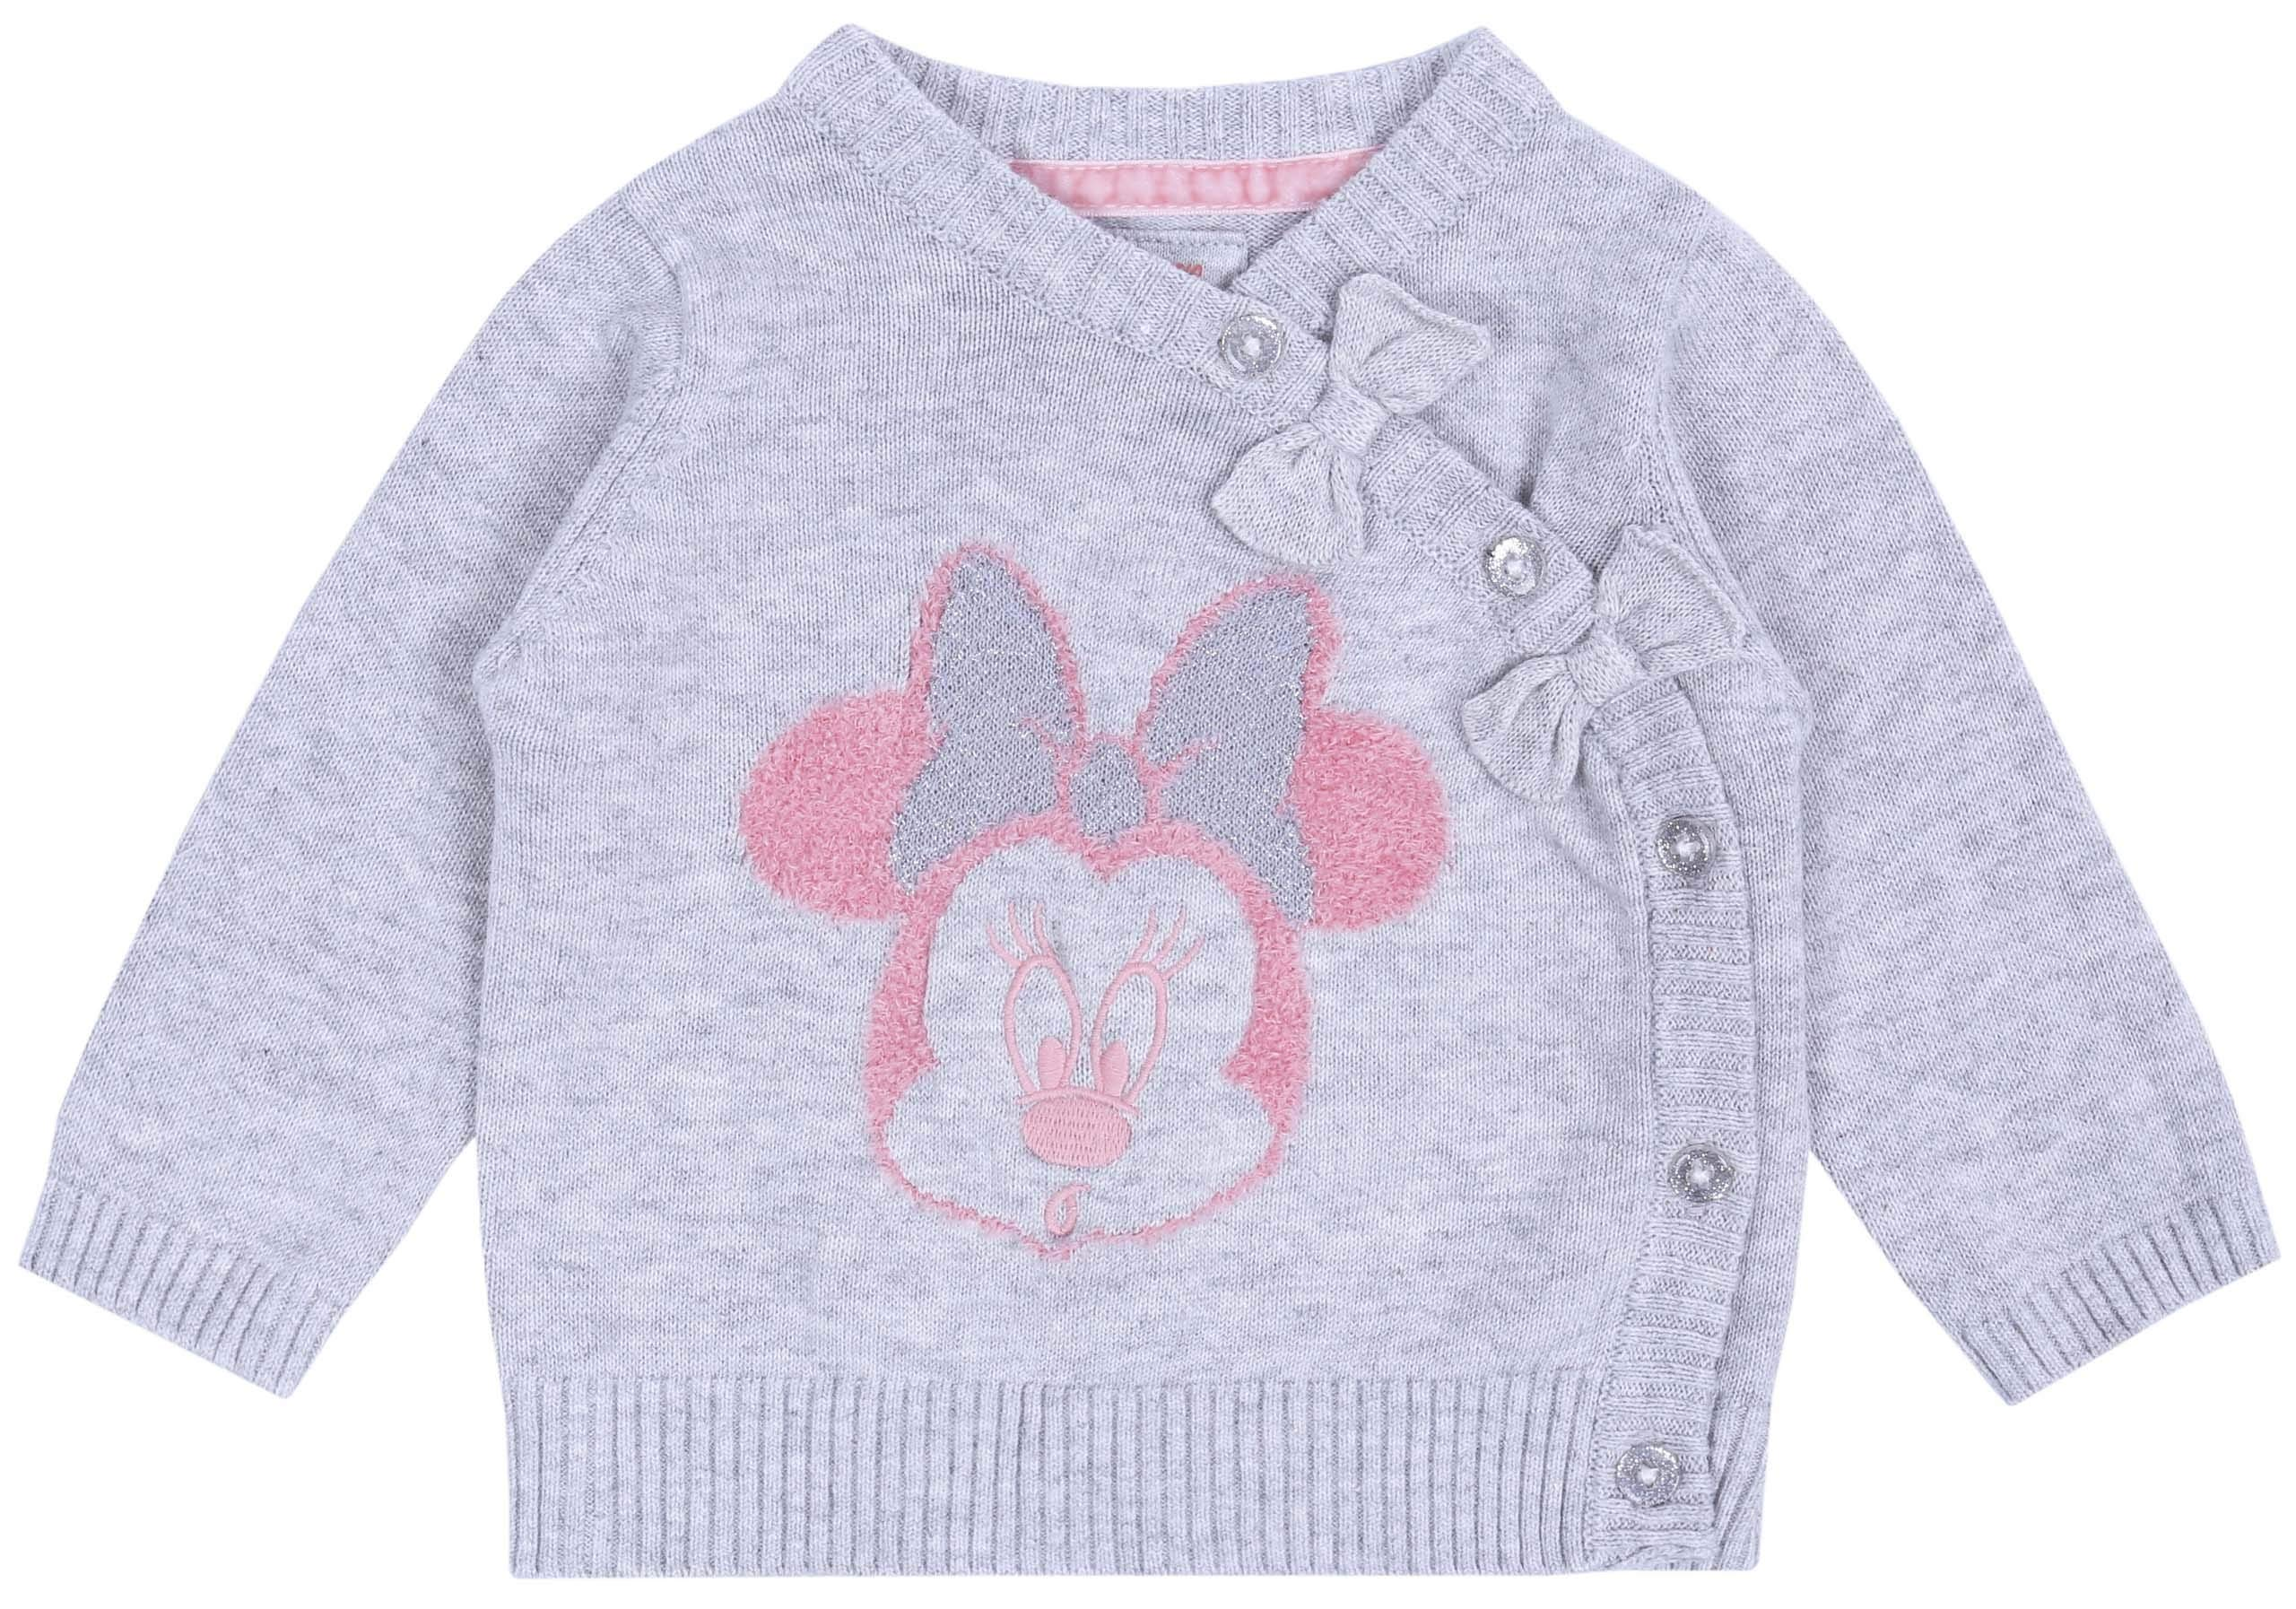 Suéter de bebé + Polainas, Color Gris-Rosa Minnie Disney 2